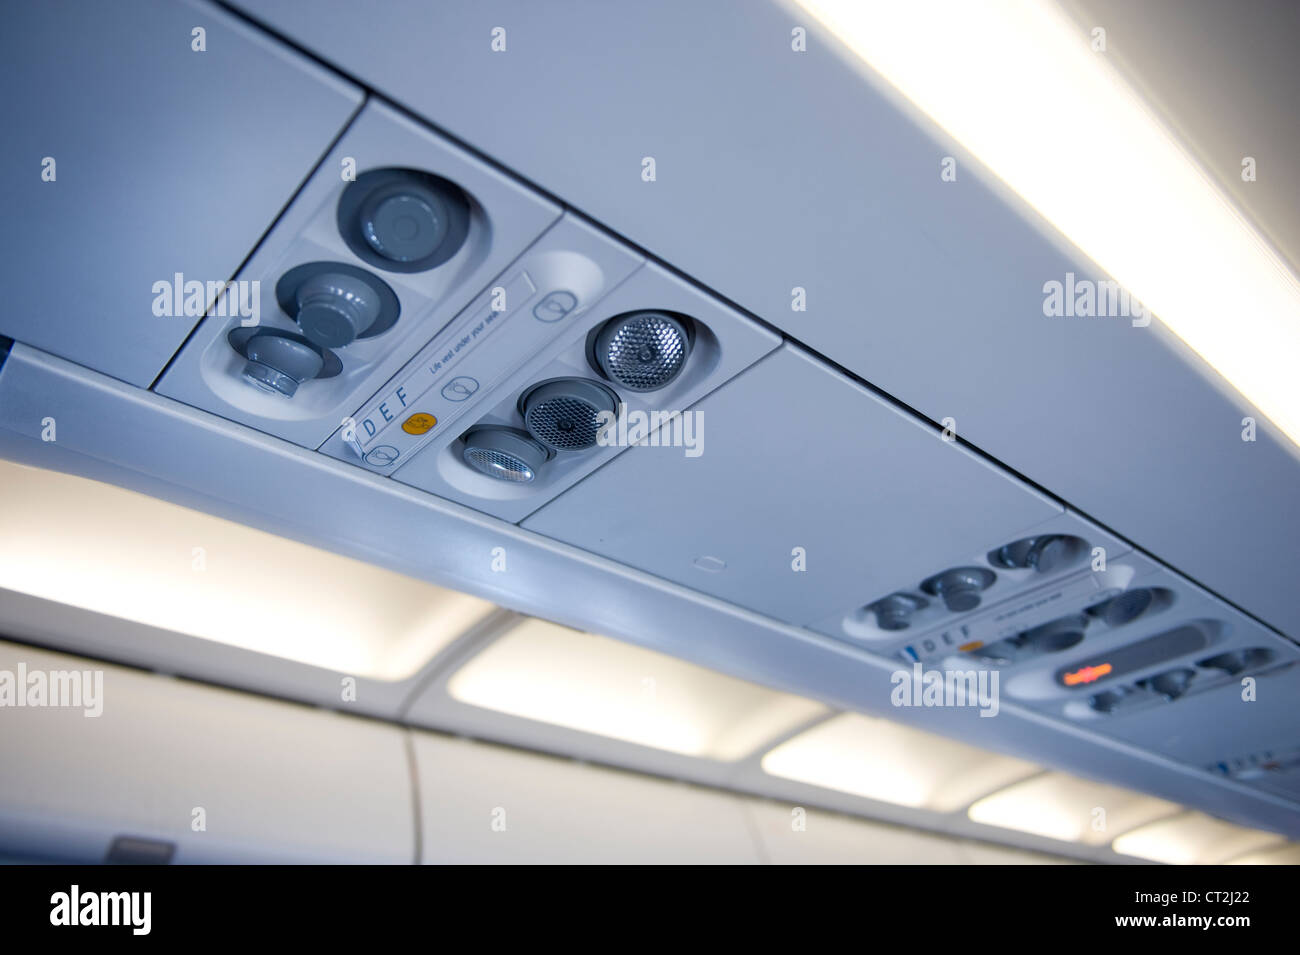 air conditioning panel stock photos air conditioning panel stock